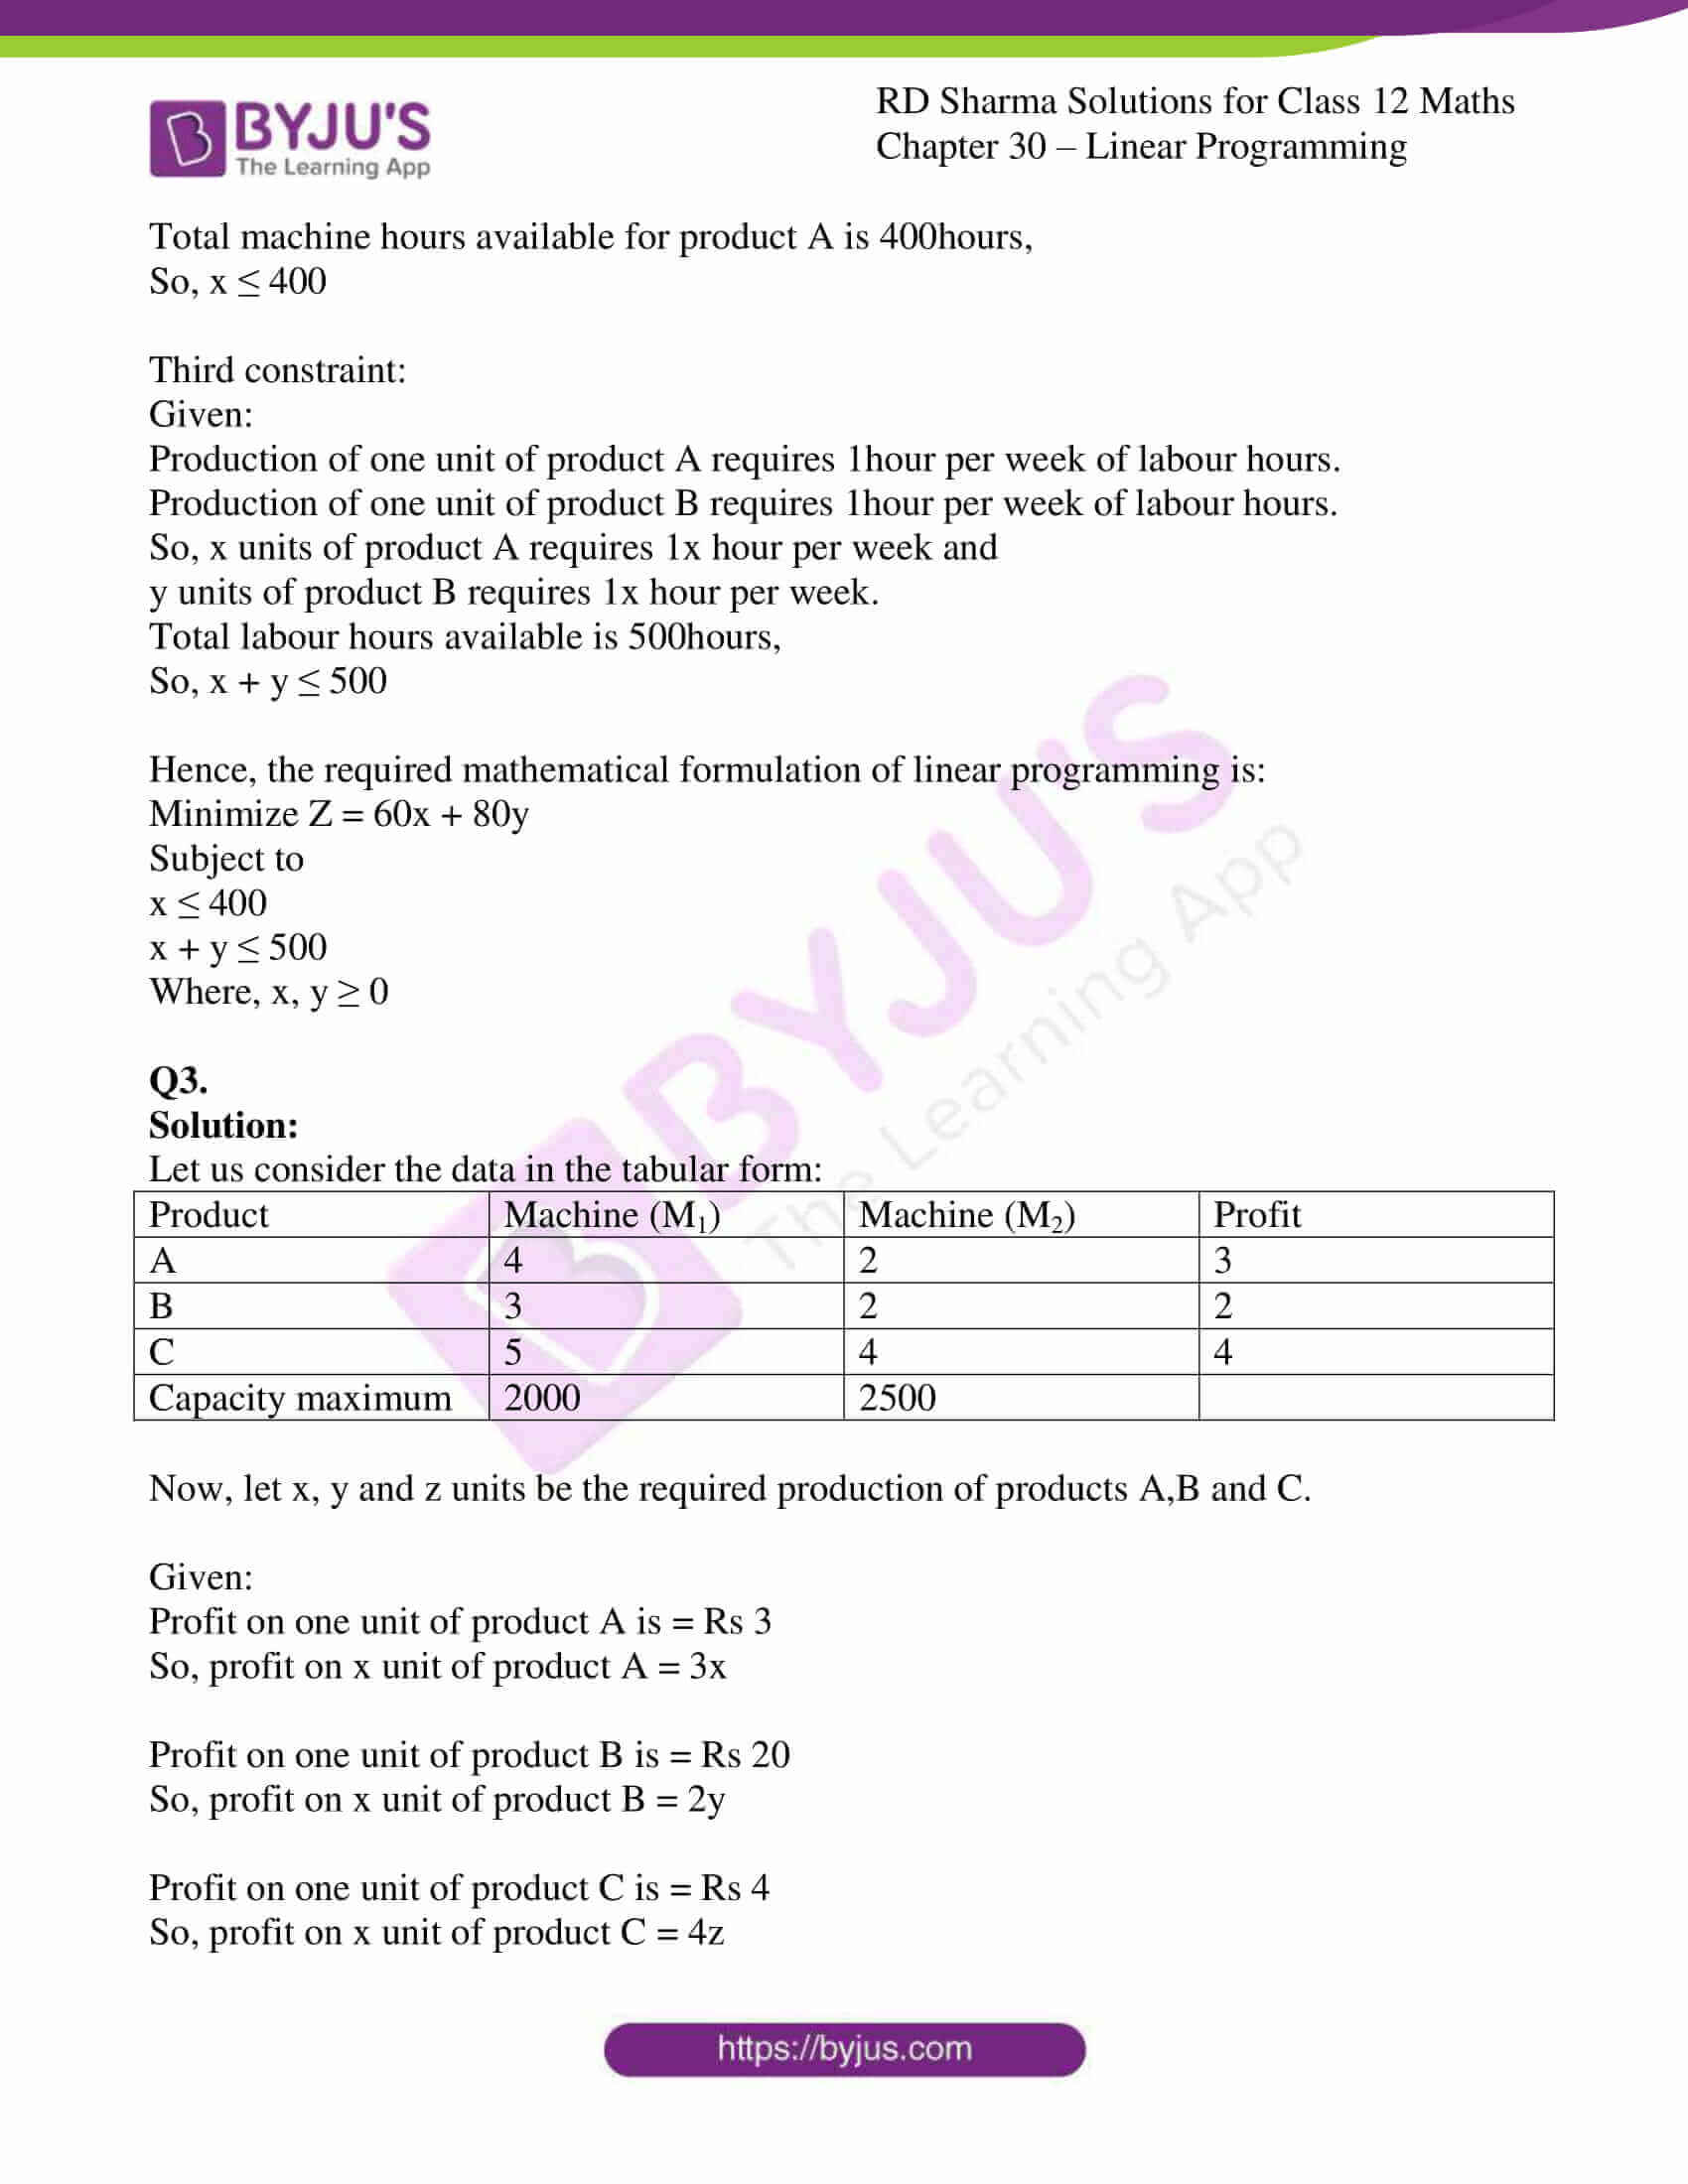 rd sharma solutions for class 12 maths chapter 30 ex 1 3